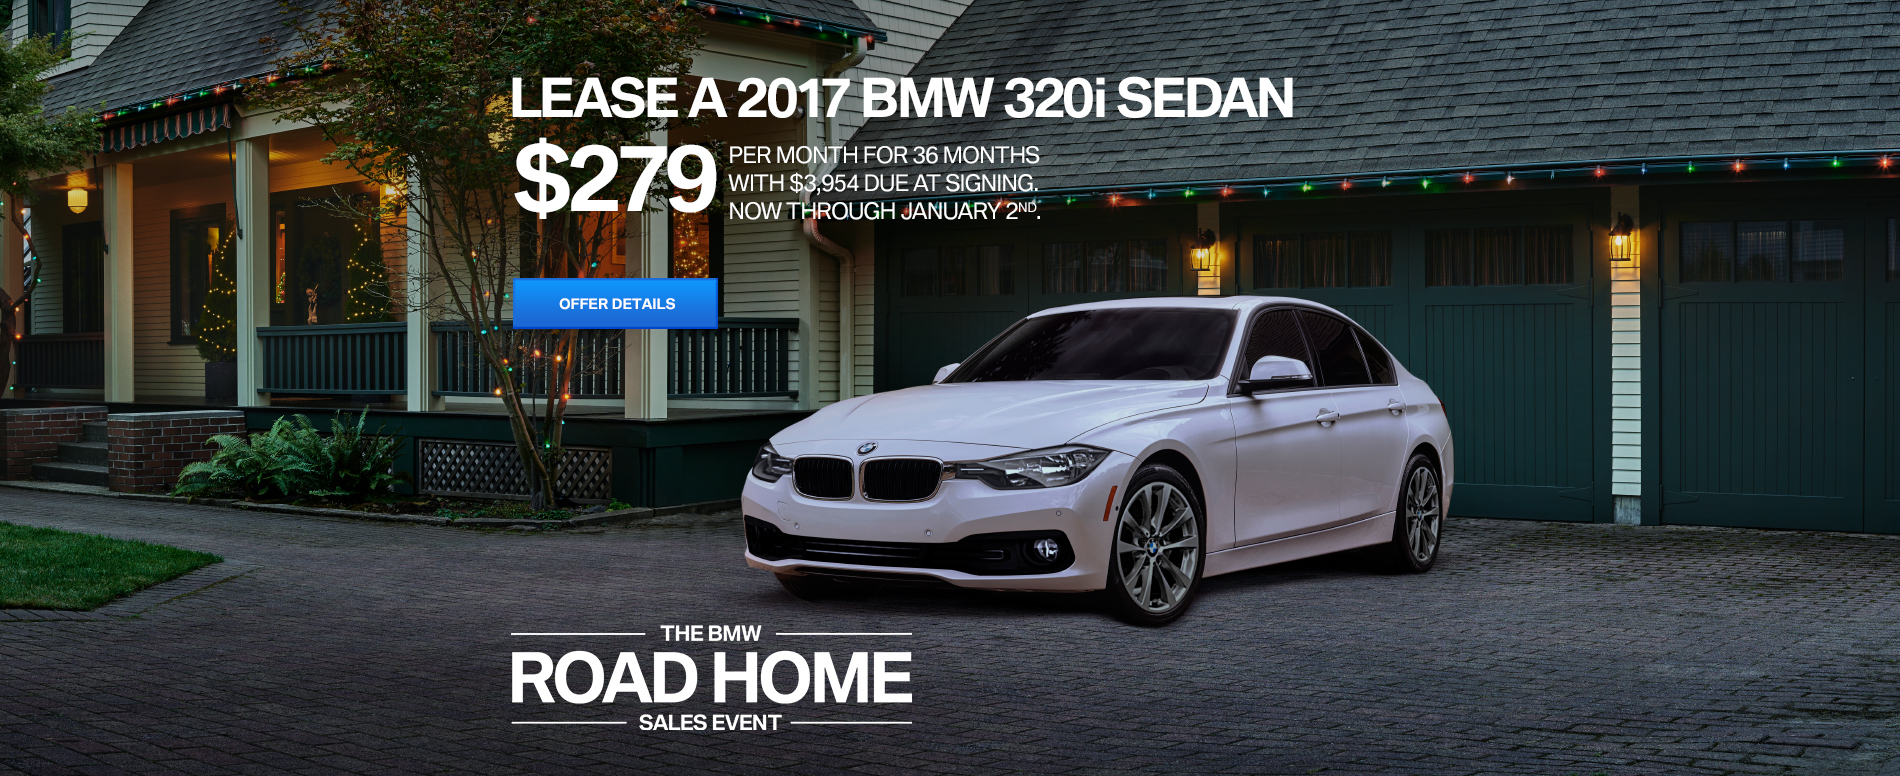 LEASE A 2017 320i SEDAN FOR $279 /MO FOR 36 MONTHS WITH $3,954 D